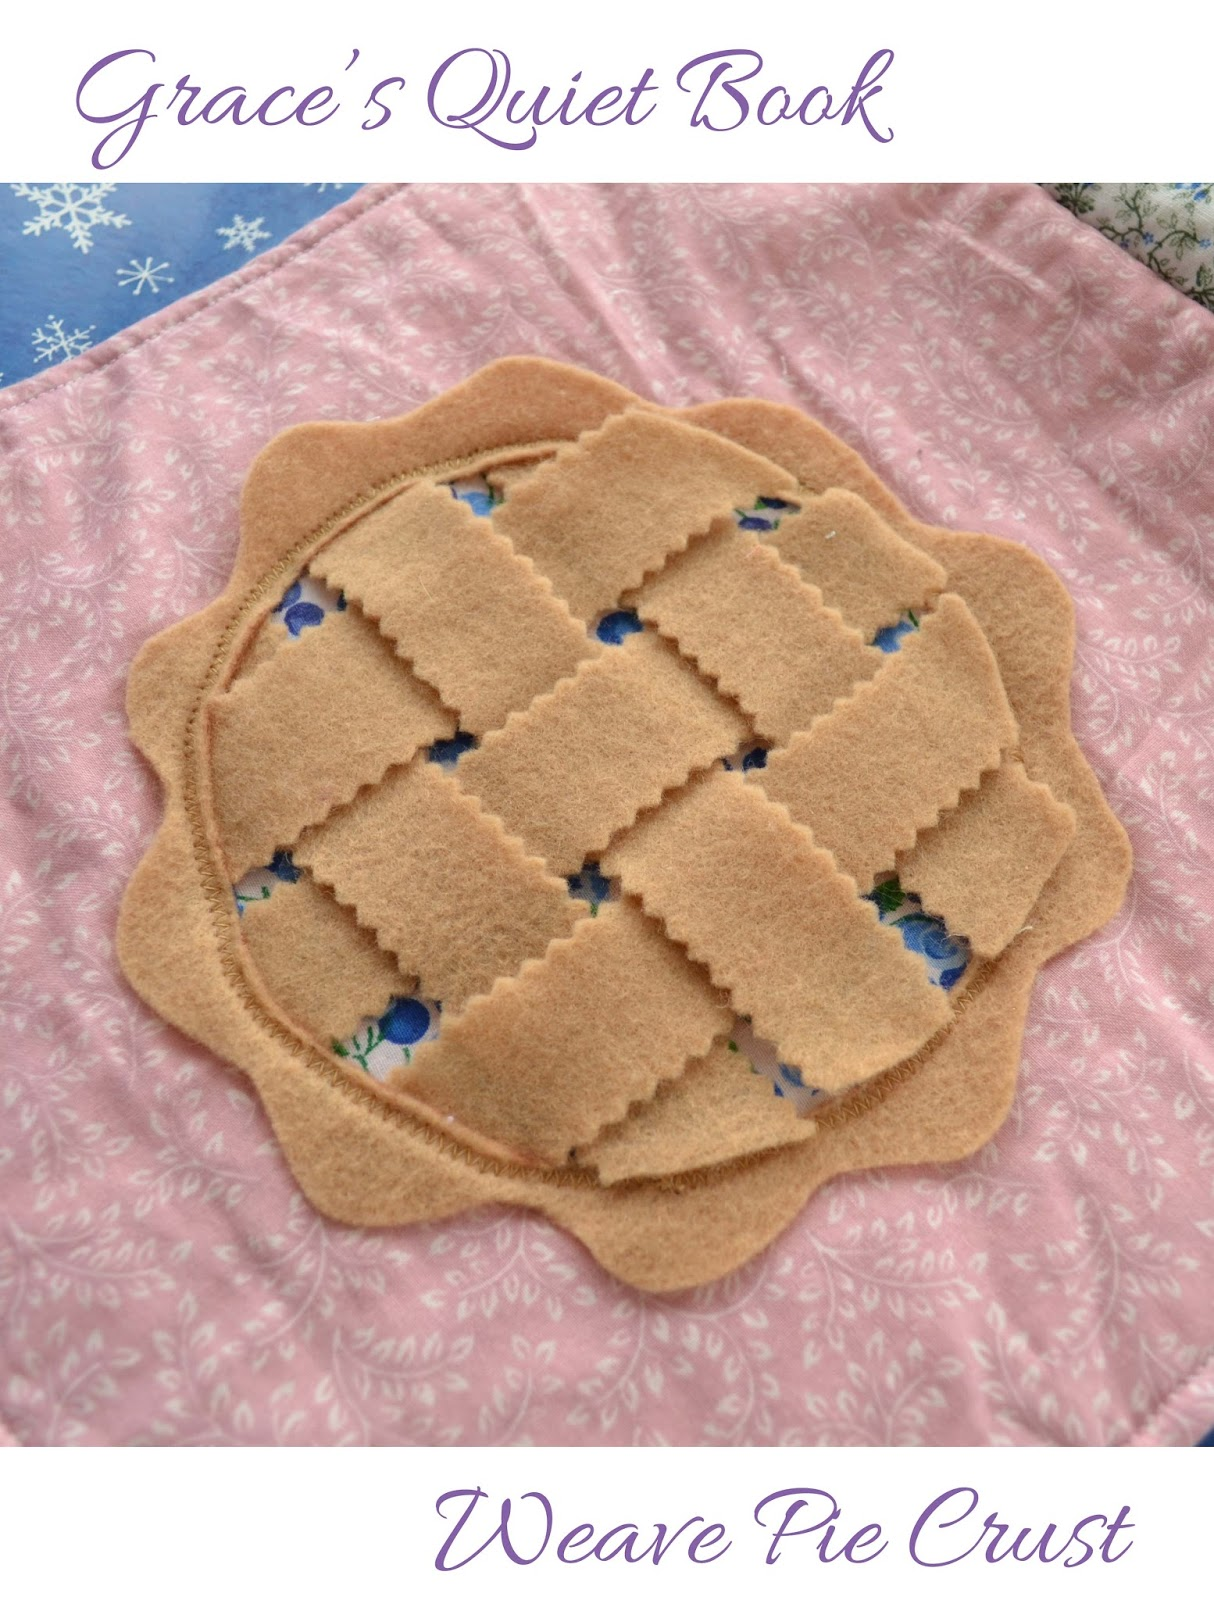 Grace's Quiet Book- Weave Pie Crust